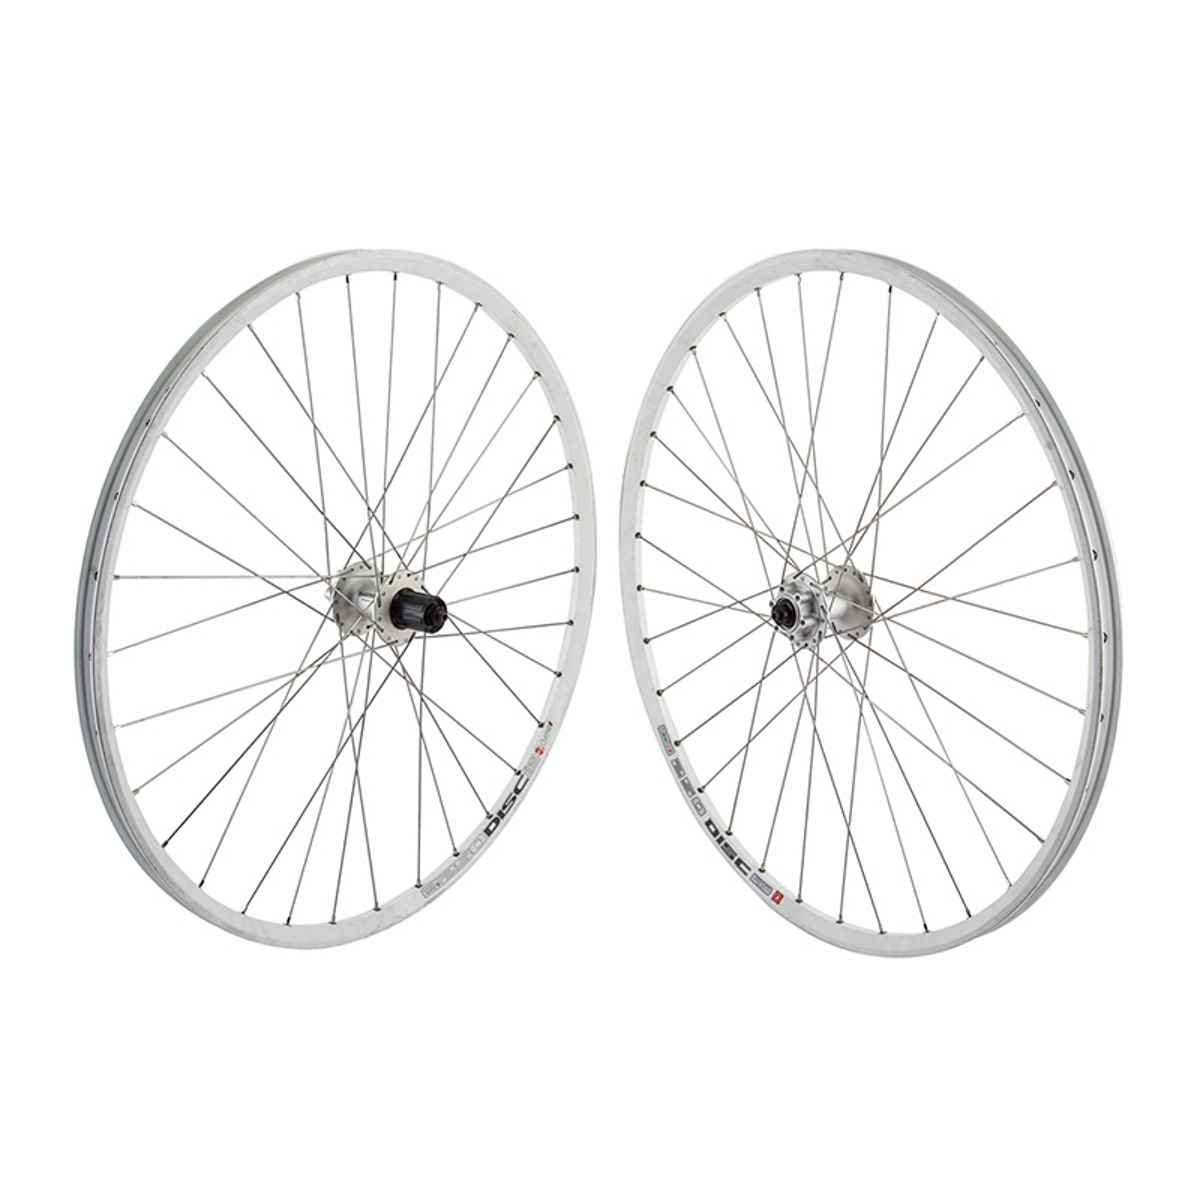 "Wheel Masters Front Wheel 26/"" Alloy Mountain Disc Double Wall 26X1.5 559X21 Wei"